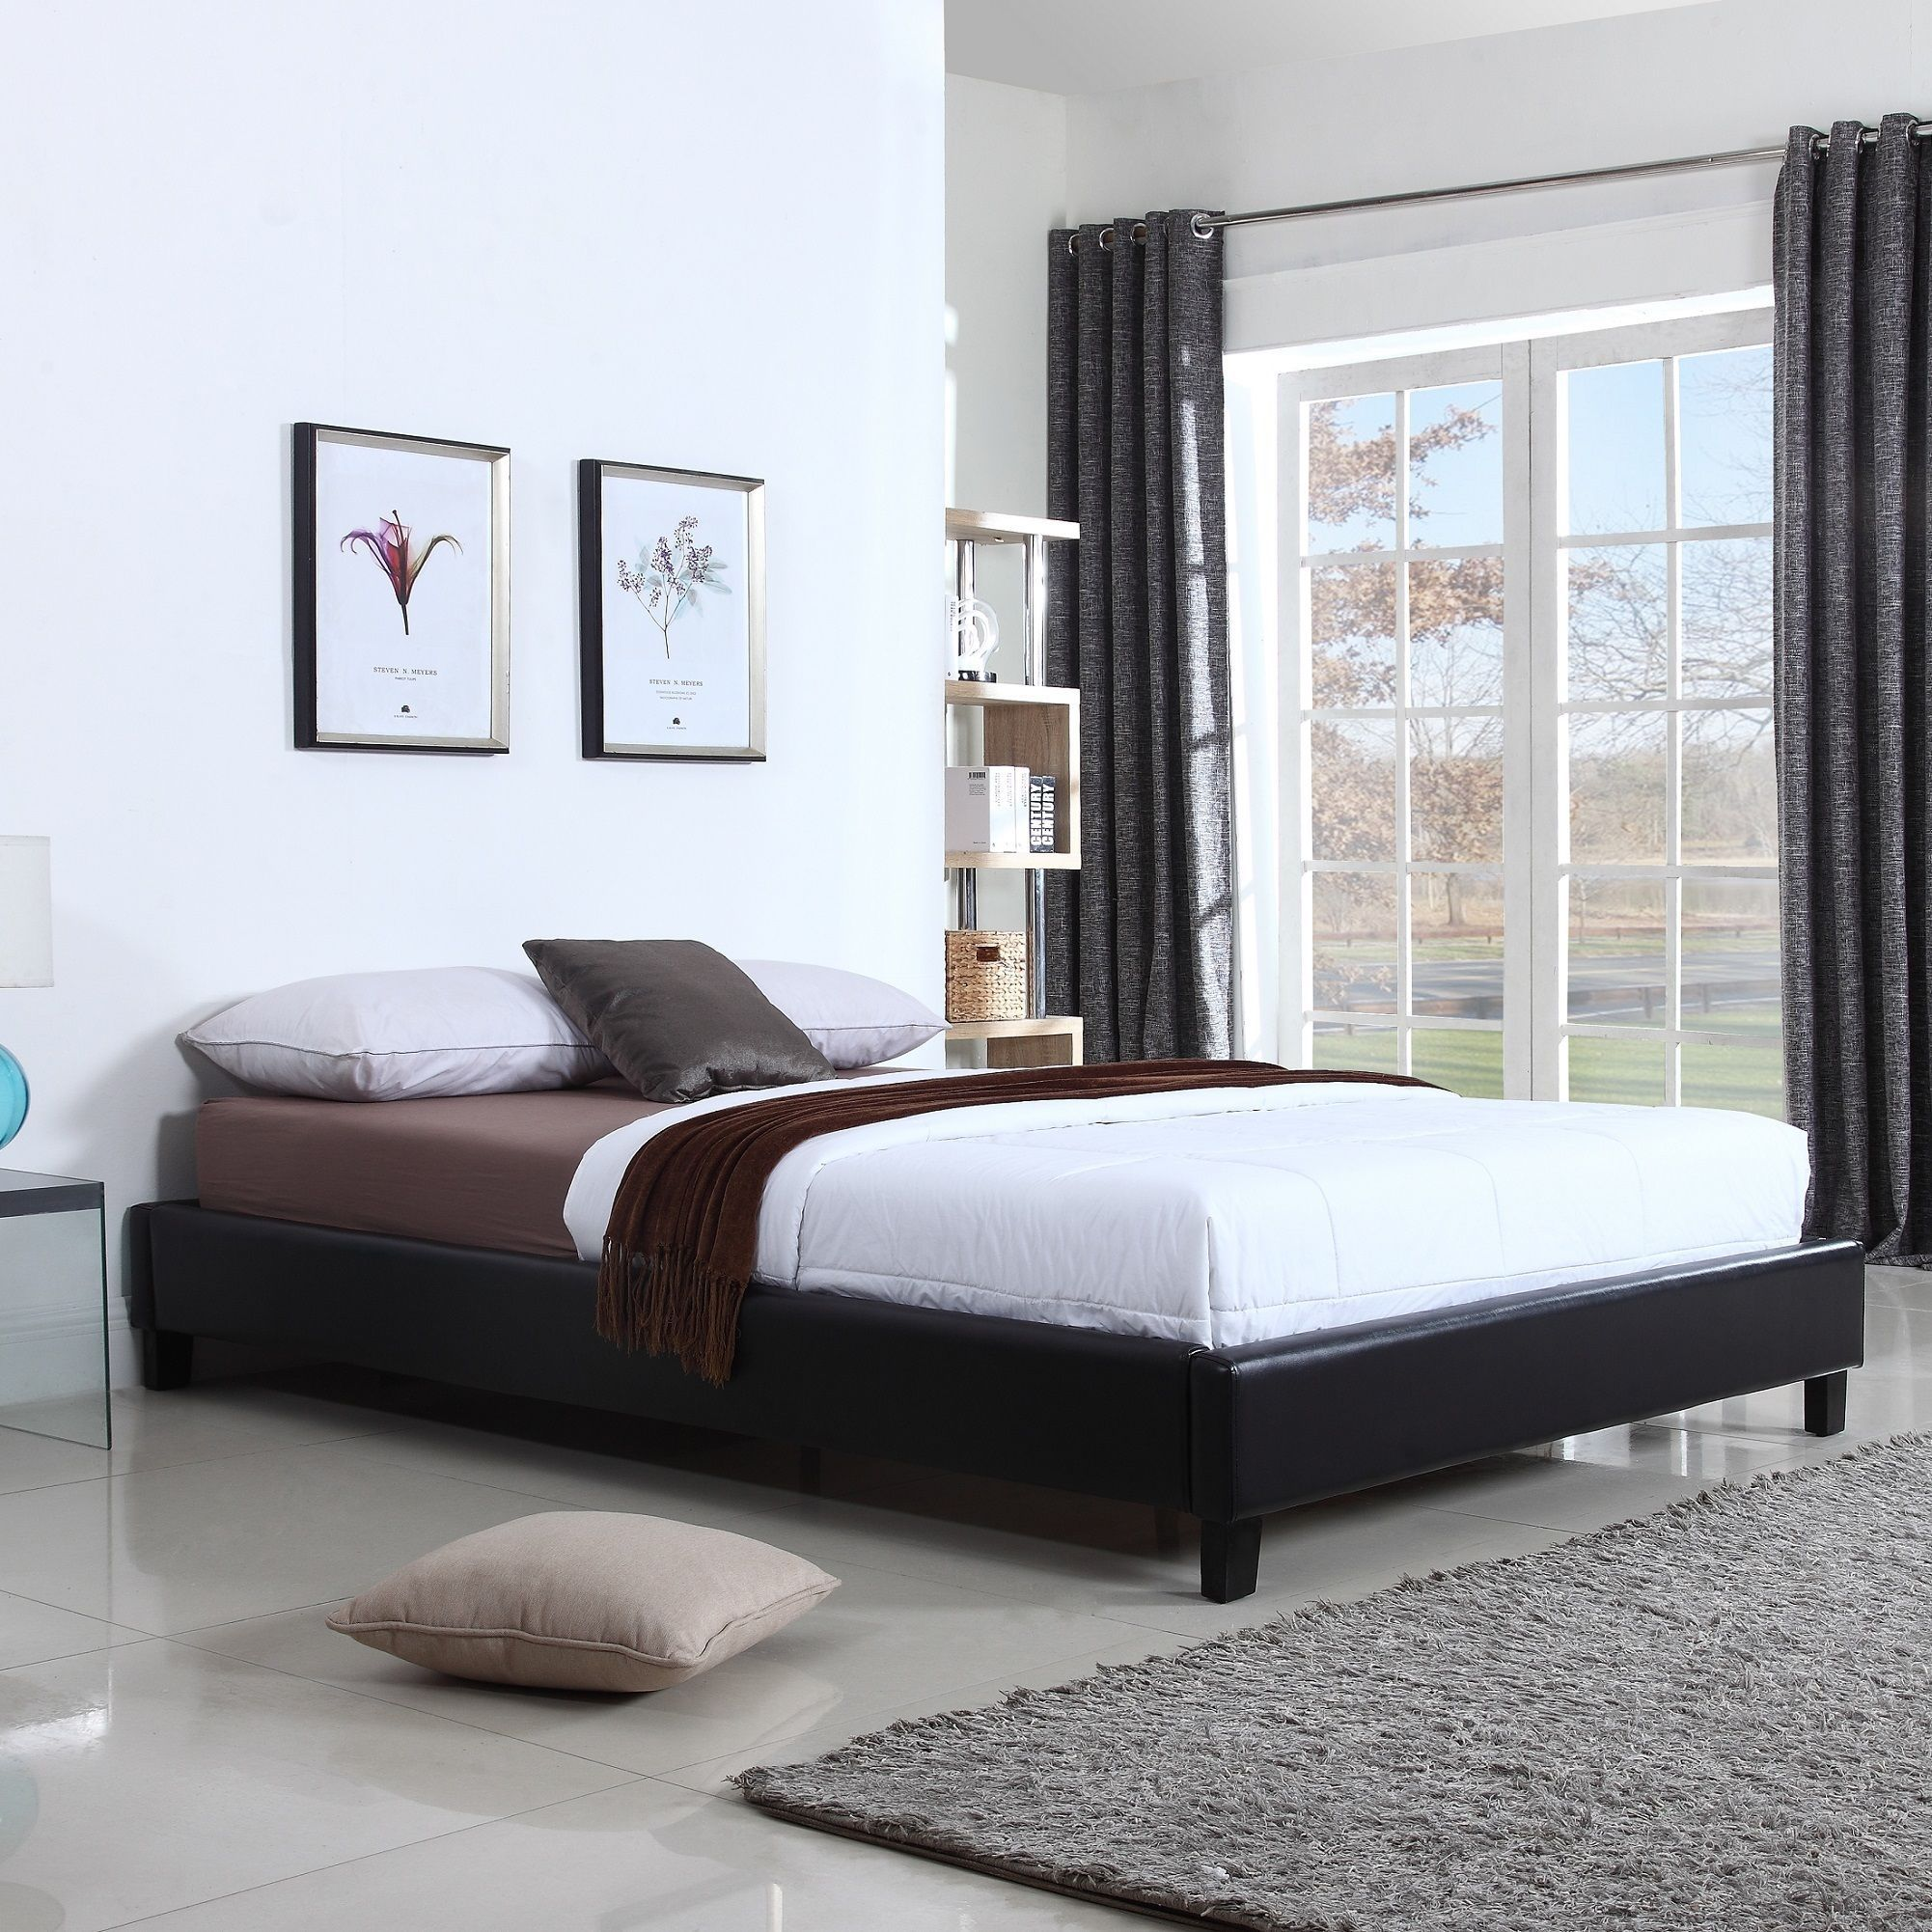 Hadwen Black Faux Leather Full/Queen Bed Leather bed